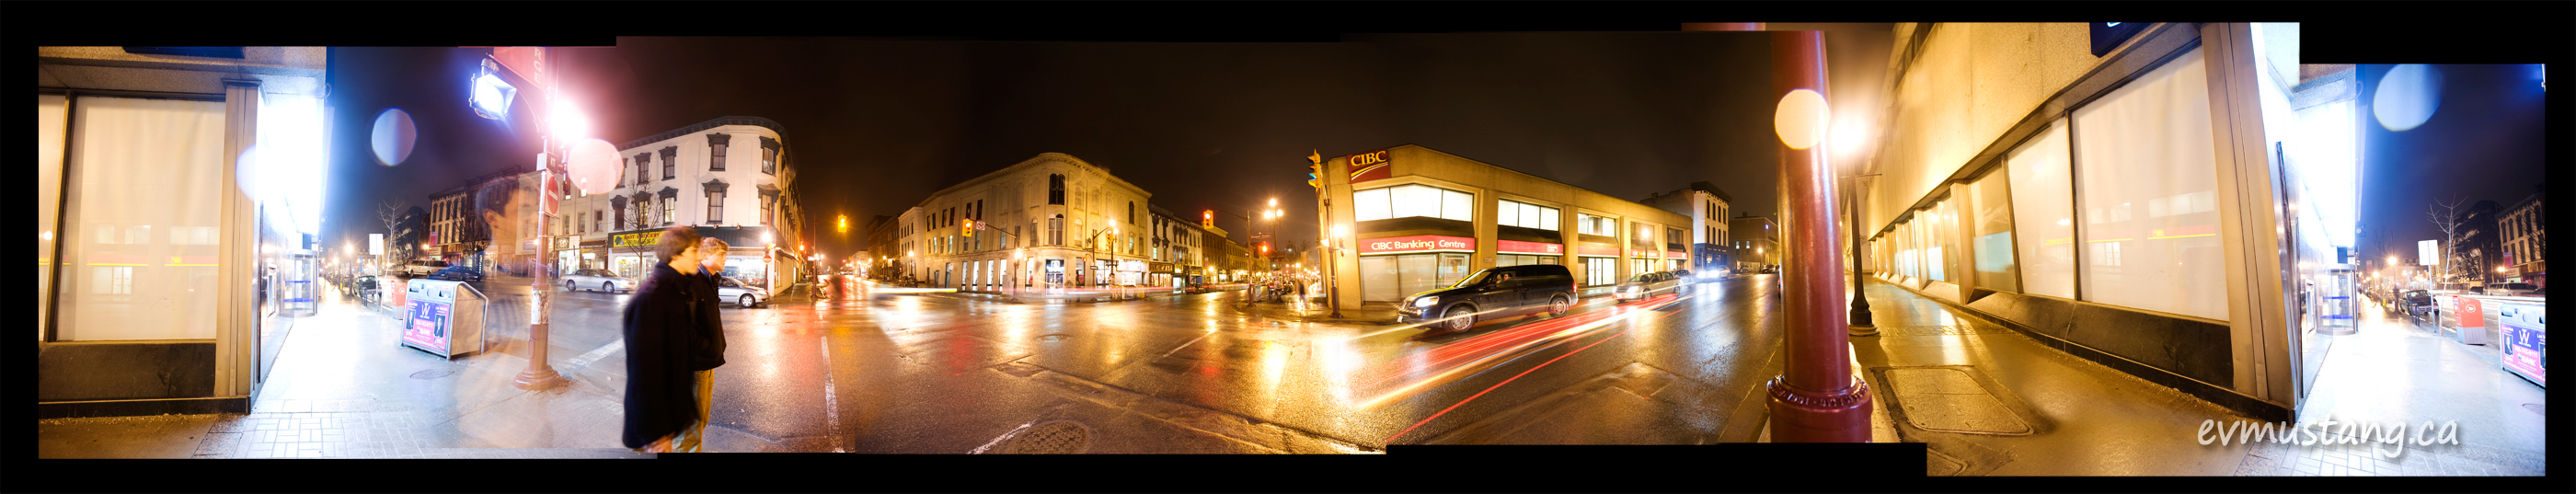 image of Hunter and George Streets, Peterborough, at night